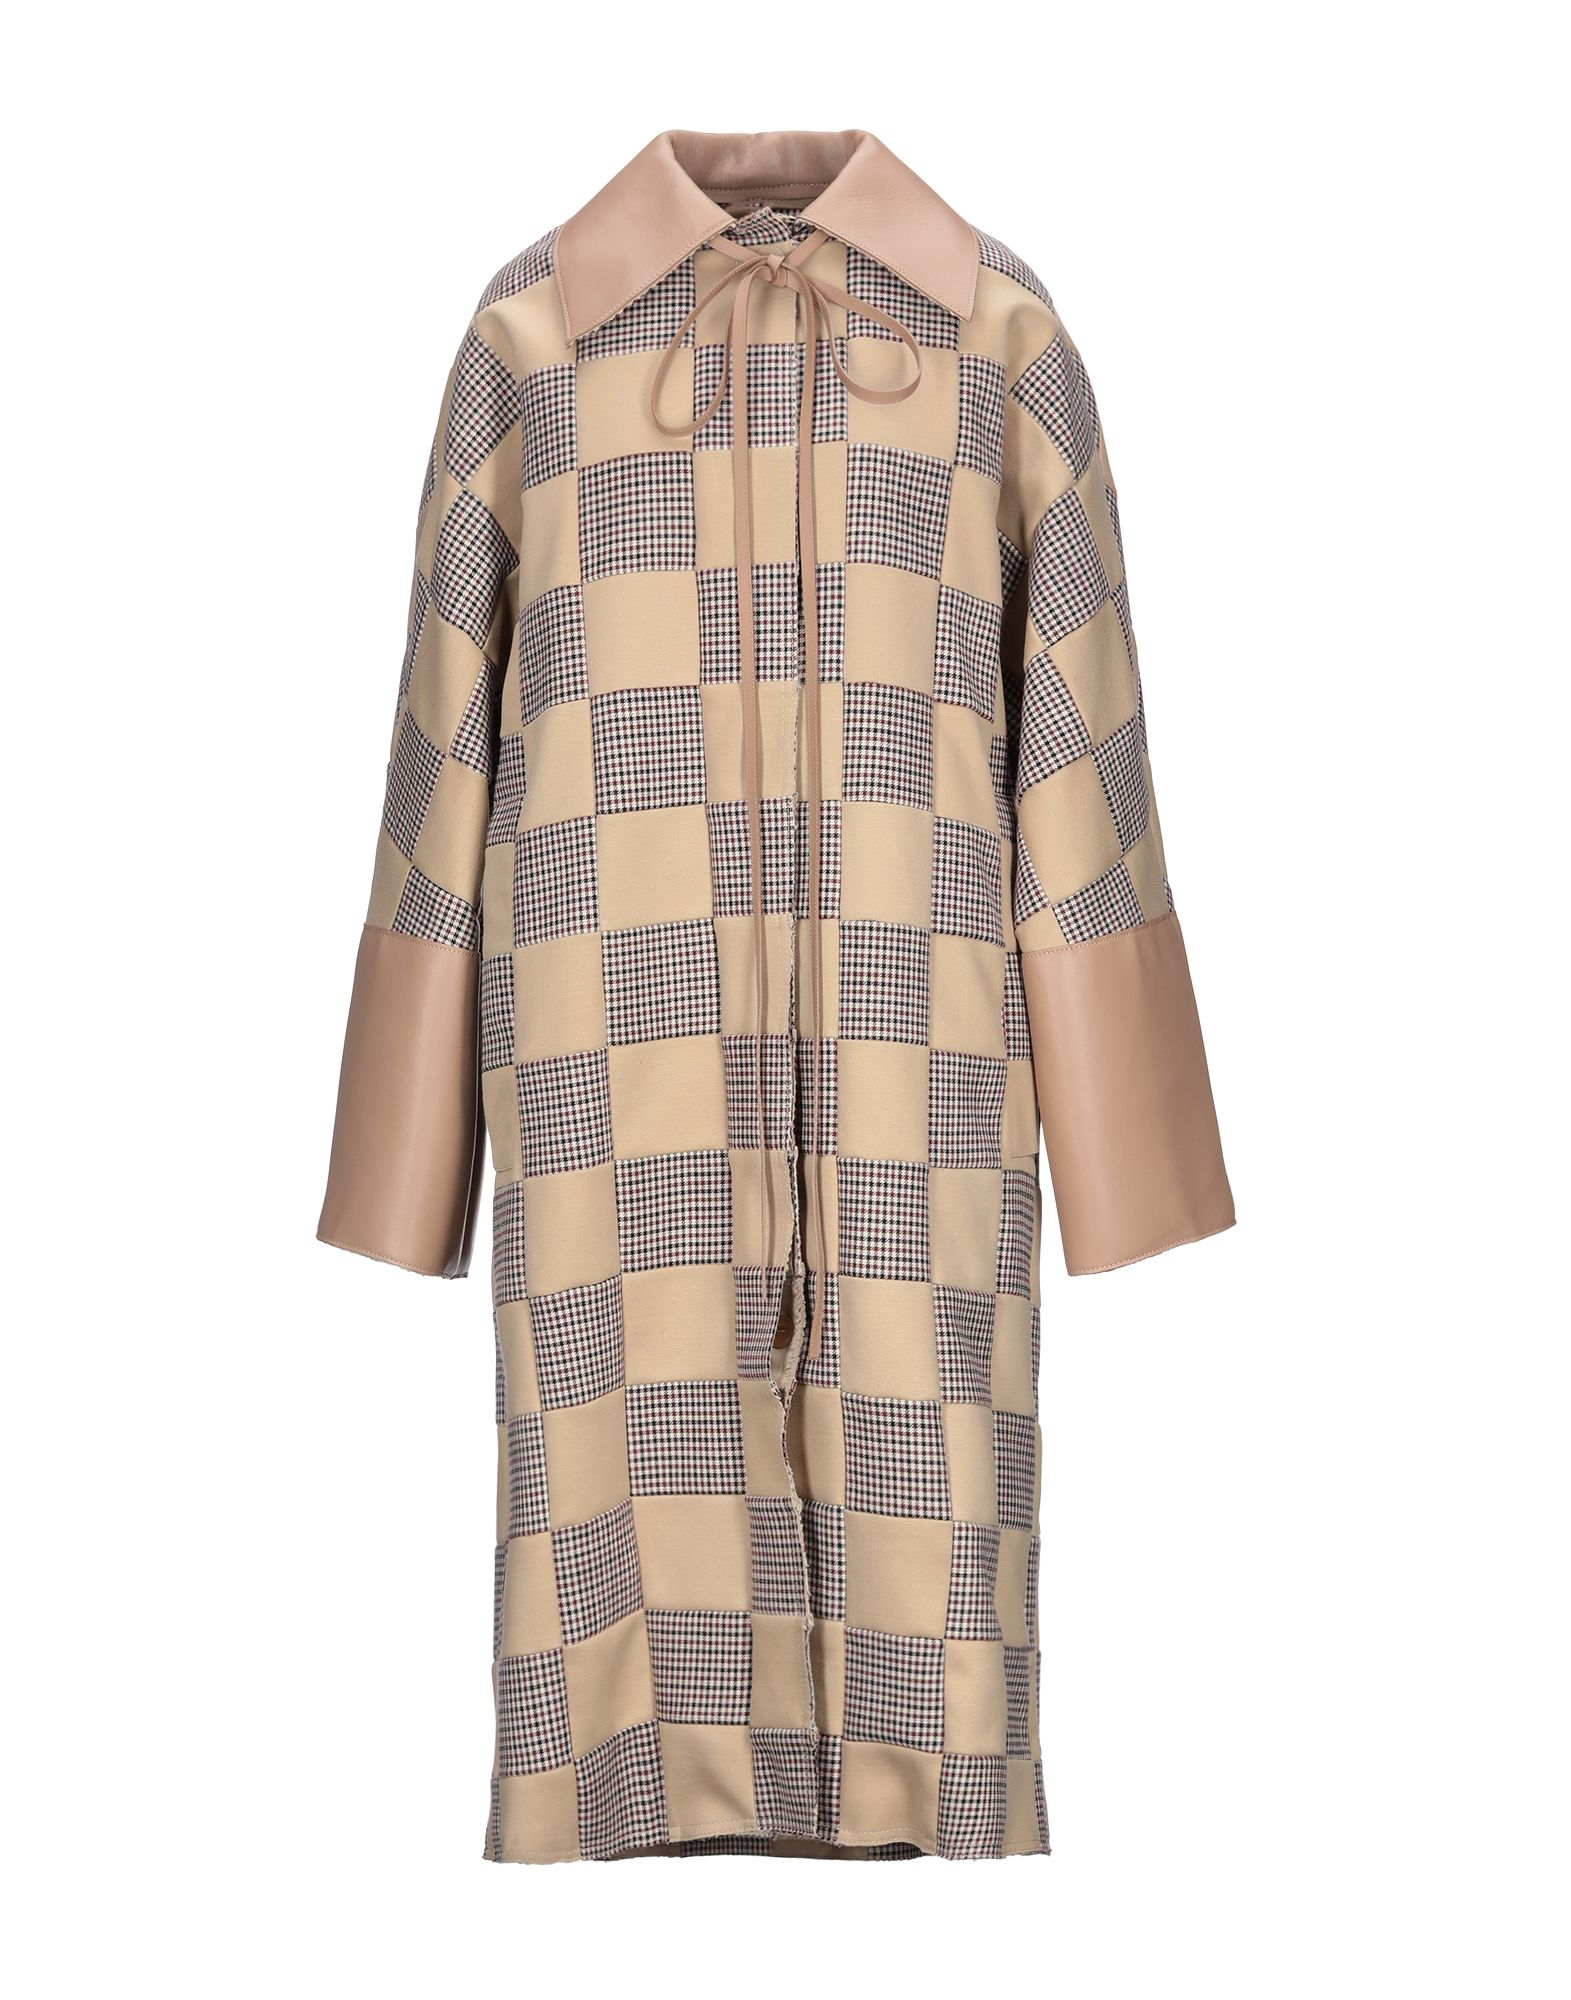 LOEWE Coats. plain weave, leather, laces, checked, single-breasted, button closing, classic neckline, multipockets, long sleeves, fully lined, contains non-textile parts of animal origin. 100% Cotton, Lambskin